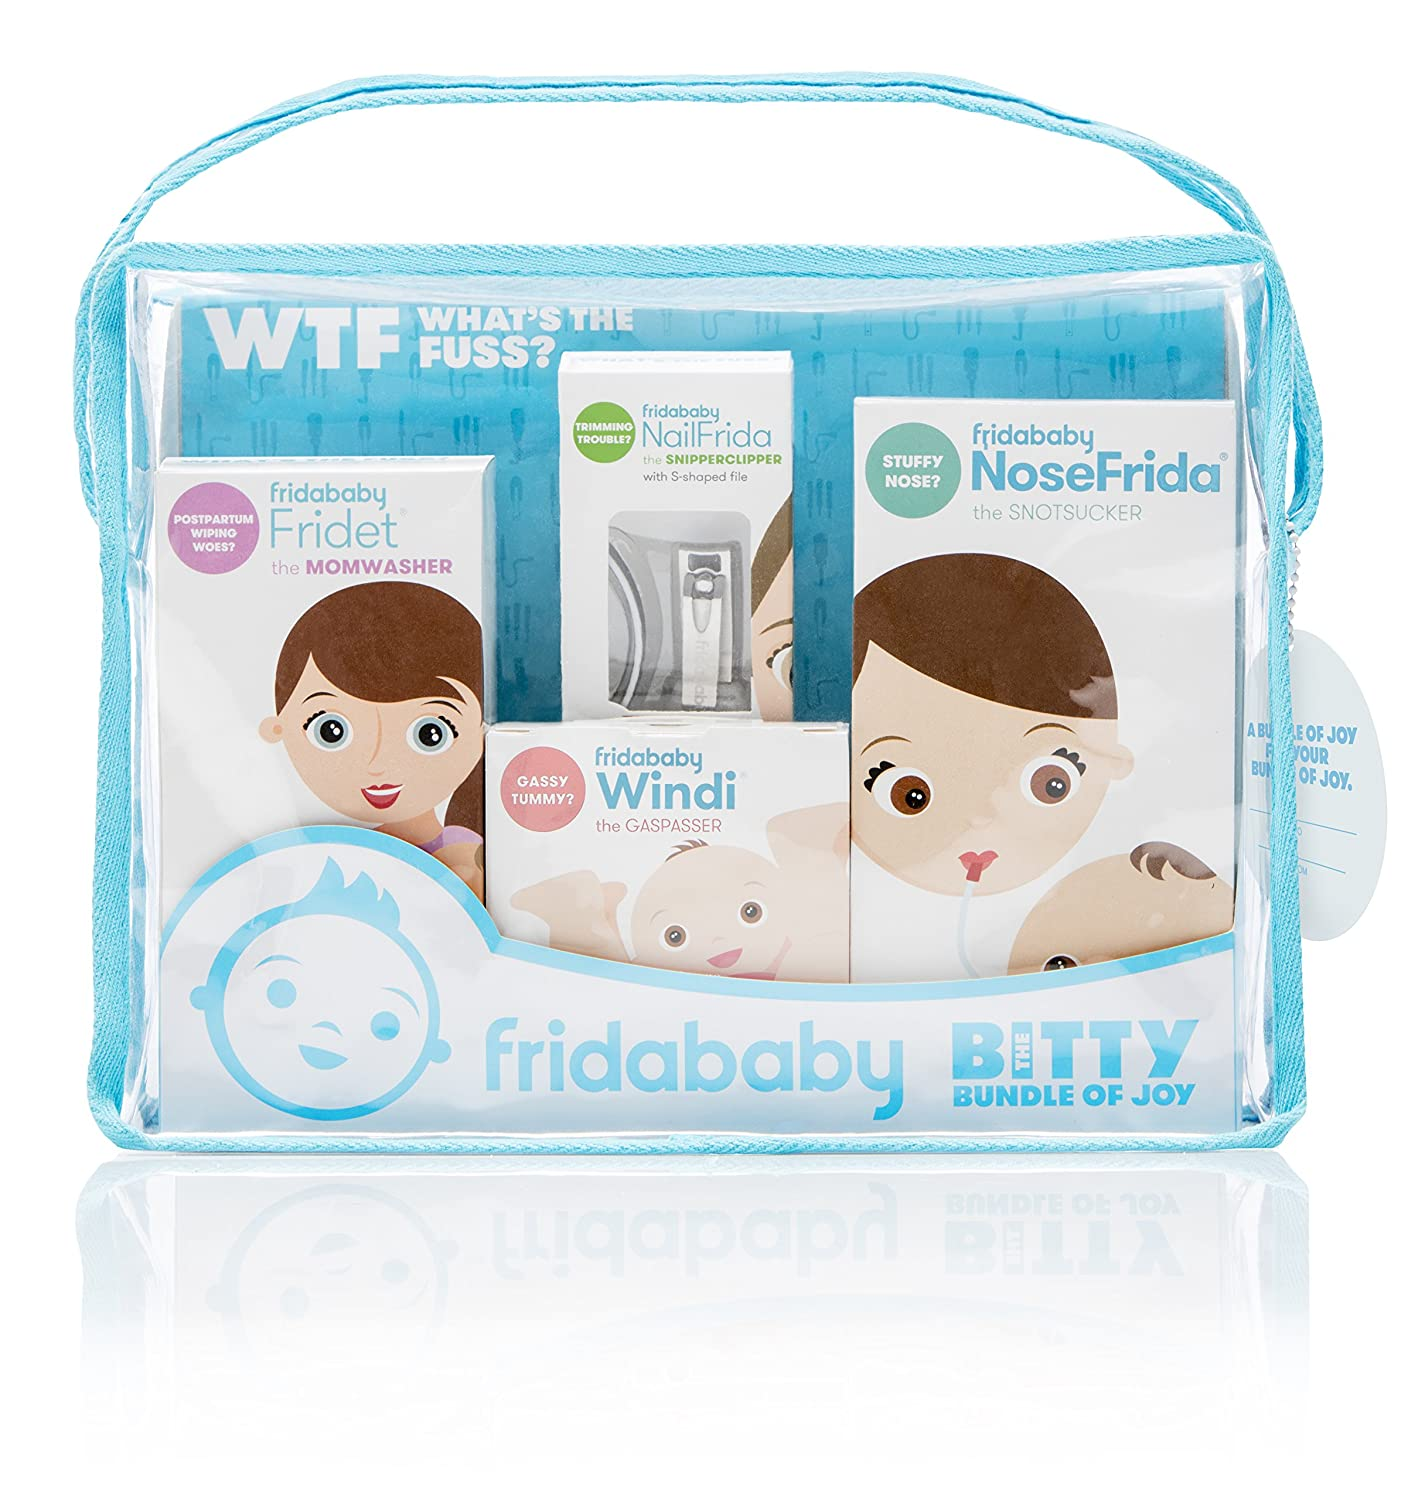 Fridababy Bitty Bundle of Joy Mom /& Baby Healthcare and Grooming Gift Kit